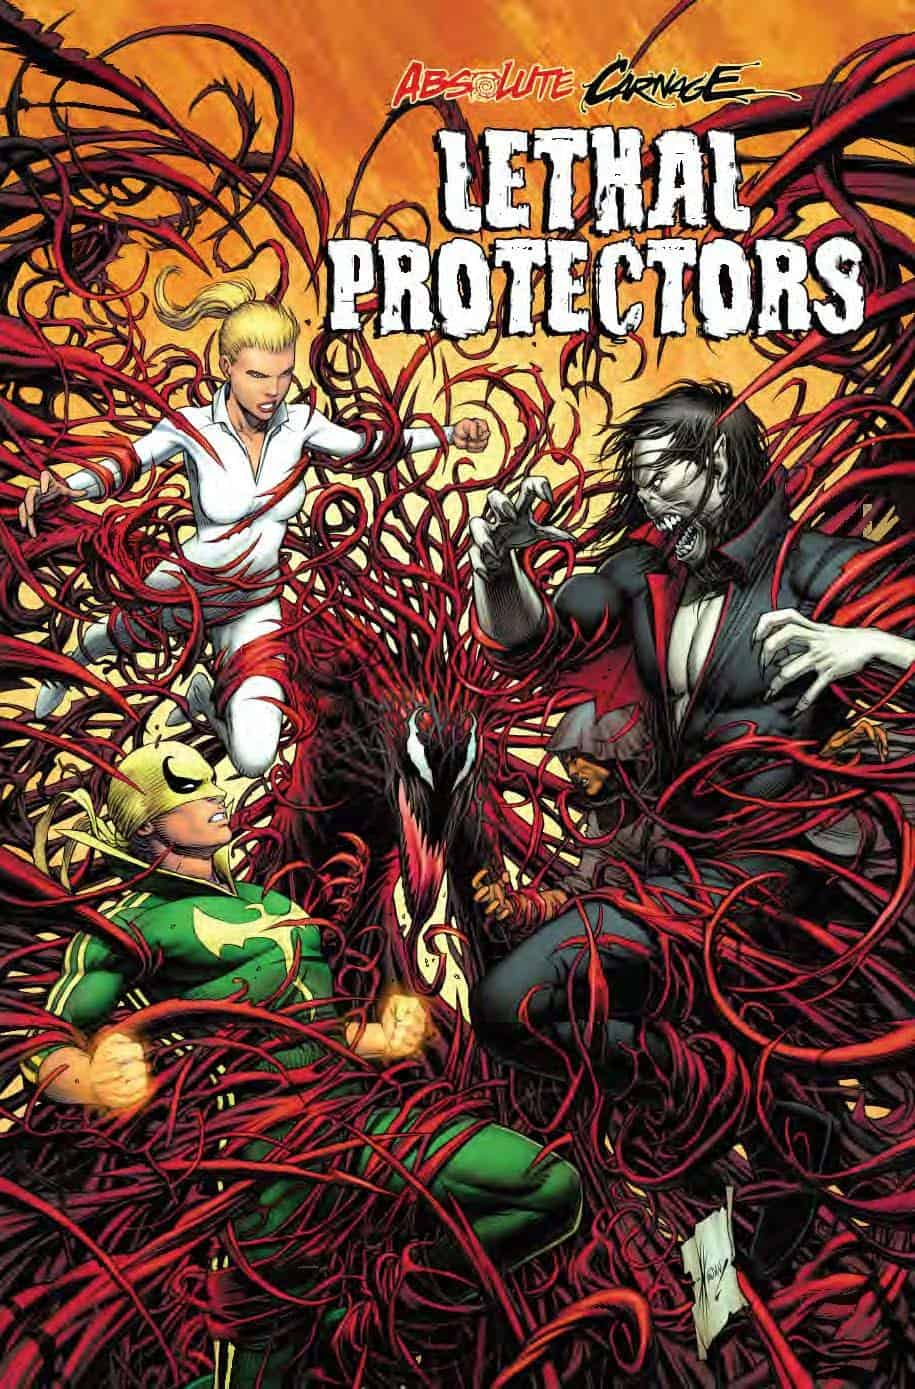 Absolute Carnage: Lethal Protectors #1 - Variant Cover by Dale Keown